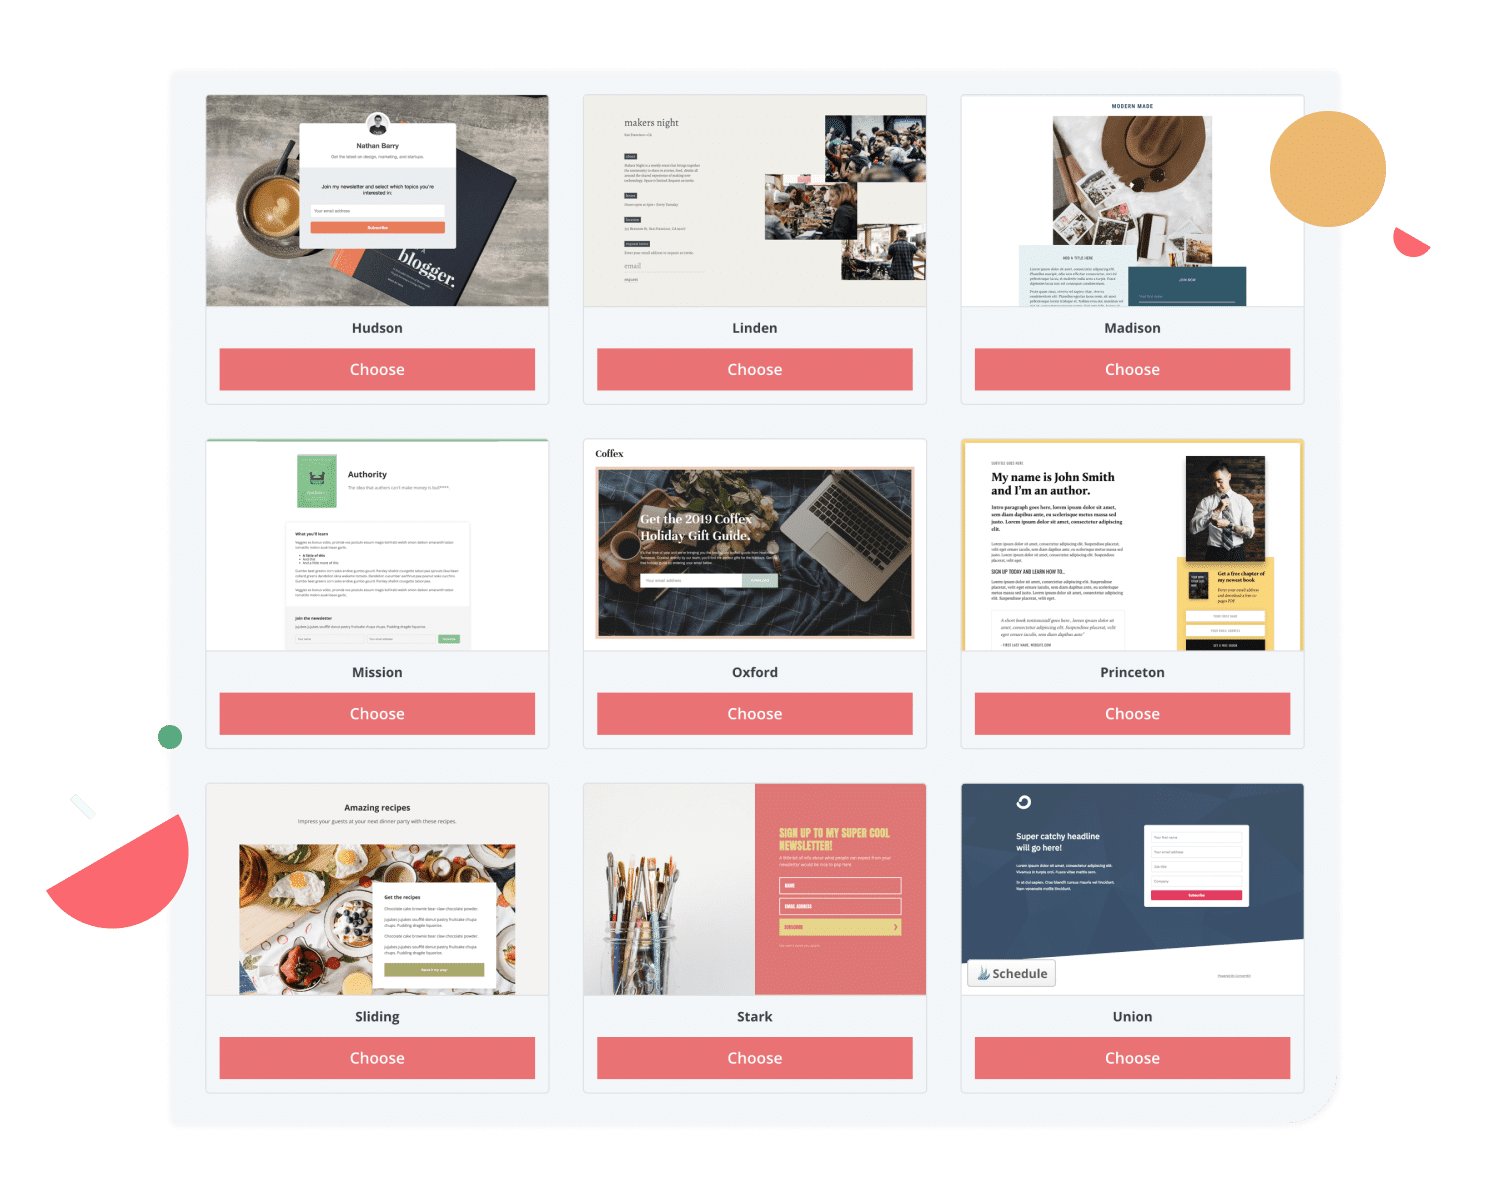 Templates for landing pages